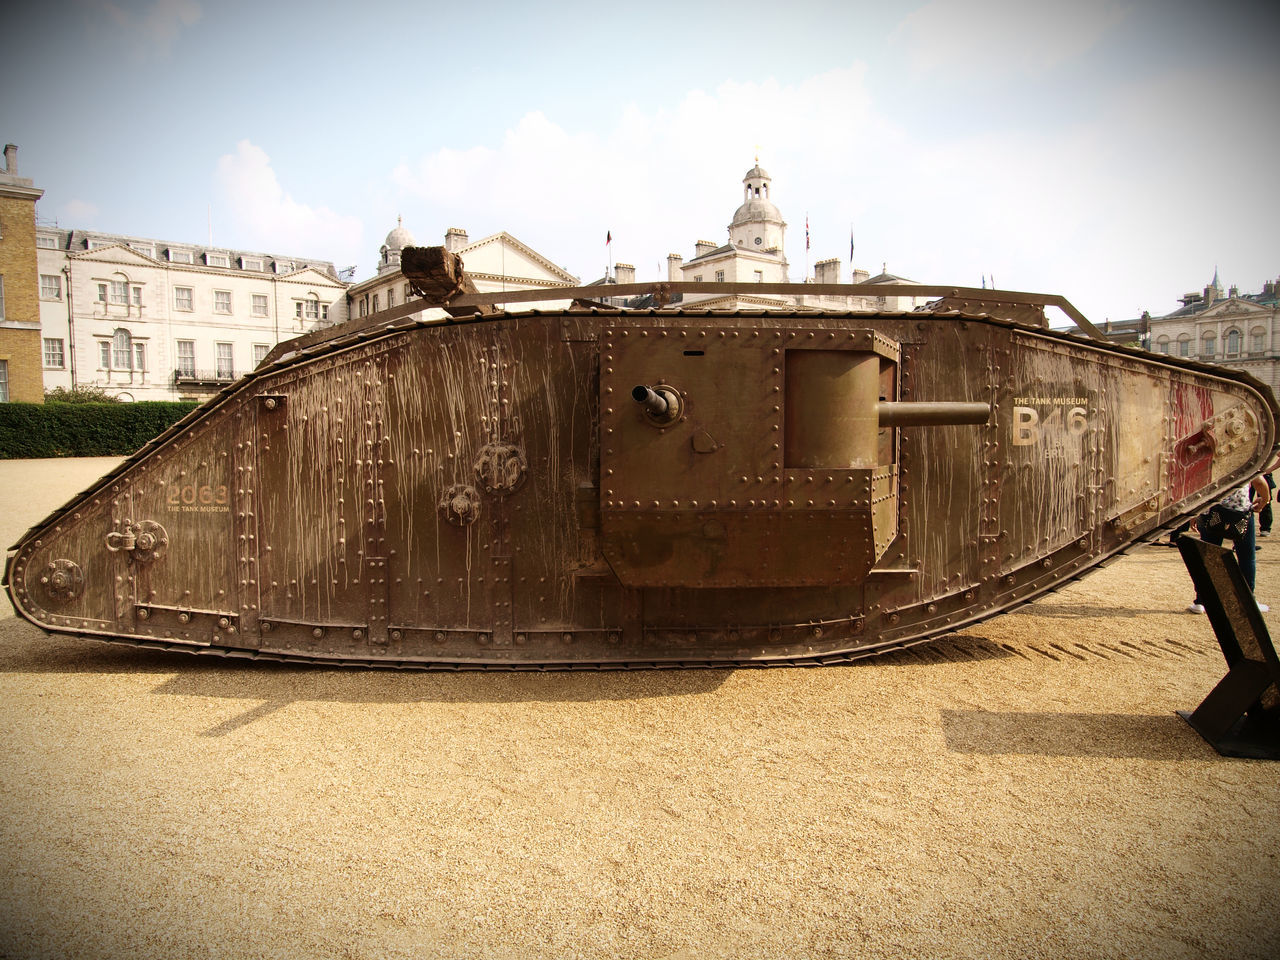 Centenary of the tank. 15/09/16 100 years ago during th battle of the Somme, tanks fought for the first time, to commemorate this a replica MkIV tank (Also used in the movie war horse) was driven to horse guards via Trafalgar Square where it was joined by a current serving Challenger II tank from the British army. Mk IV tank Courtesy of the Bovington Tank Museum. 100 Years Of The Tank 100 Years Old Battle Of The Somme Bovington Tank Museum Centenary  Challenger II Tank Horse Guards  London Mk IV Olympus Steve Merrick Stevesevilempire Tank Centenary Tank Corps Tank Museum Bovington Tanks War Horse War Memorial World War One Zuiko